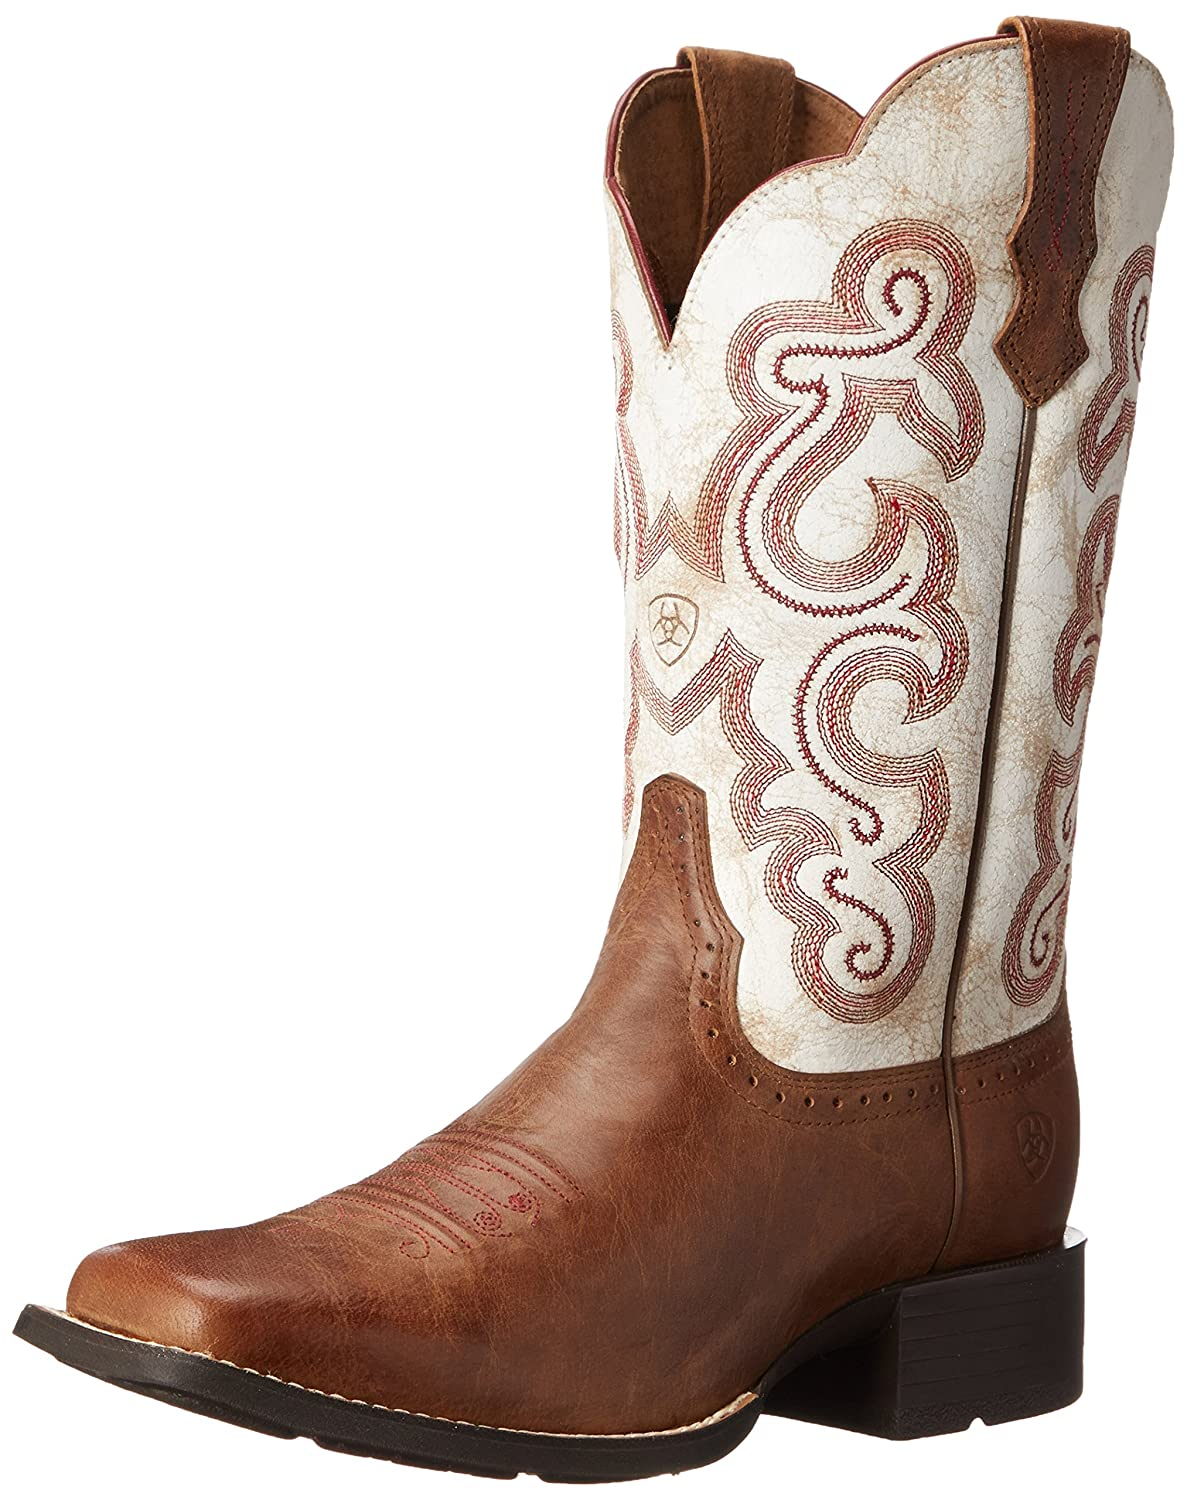 Ariat Women's Quickdraw Work Boot B00NTN1Q1M 8 B(M) US|Sandstorm/Distressed White